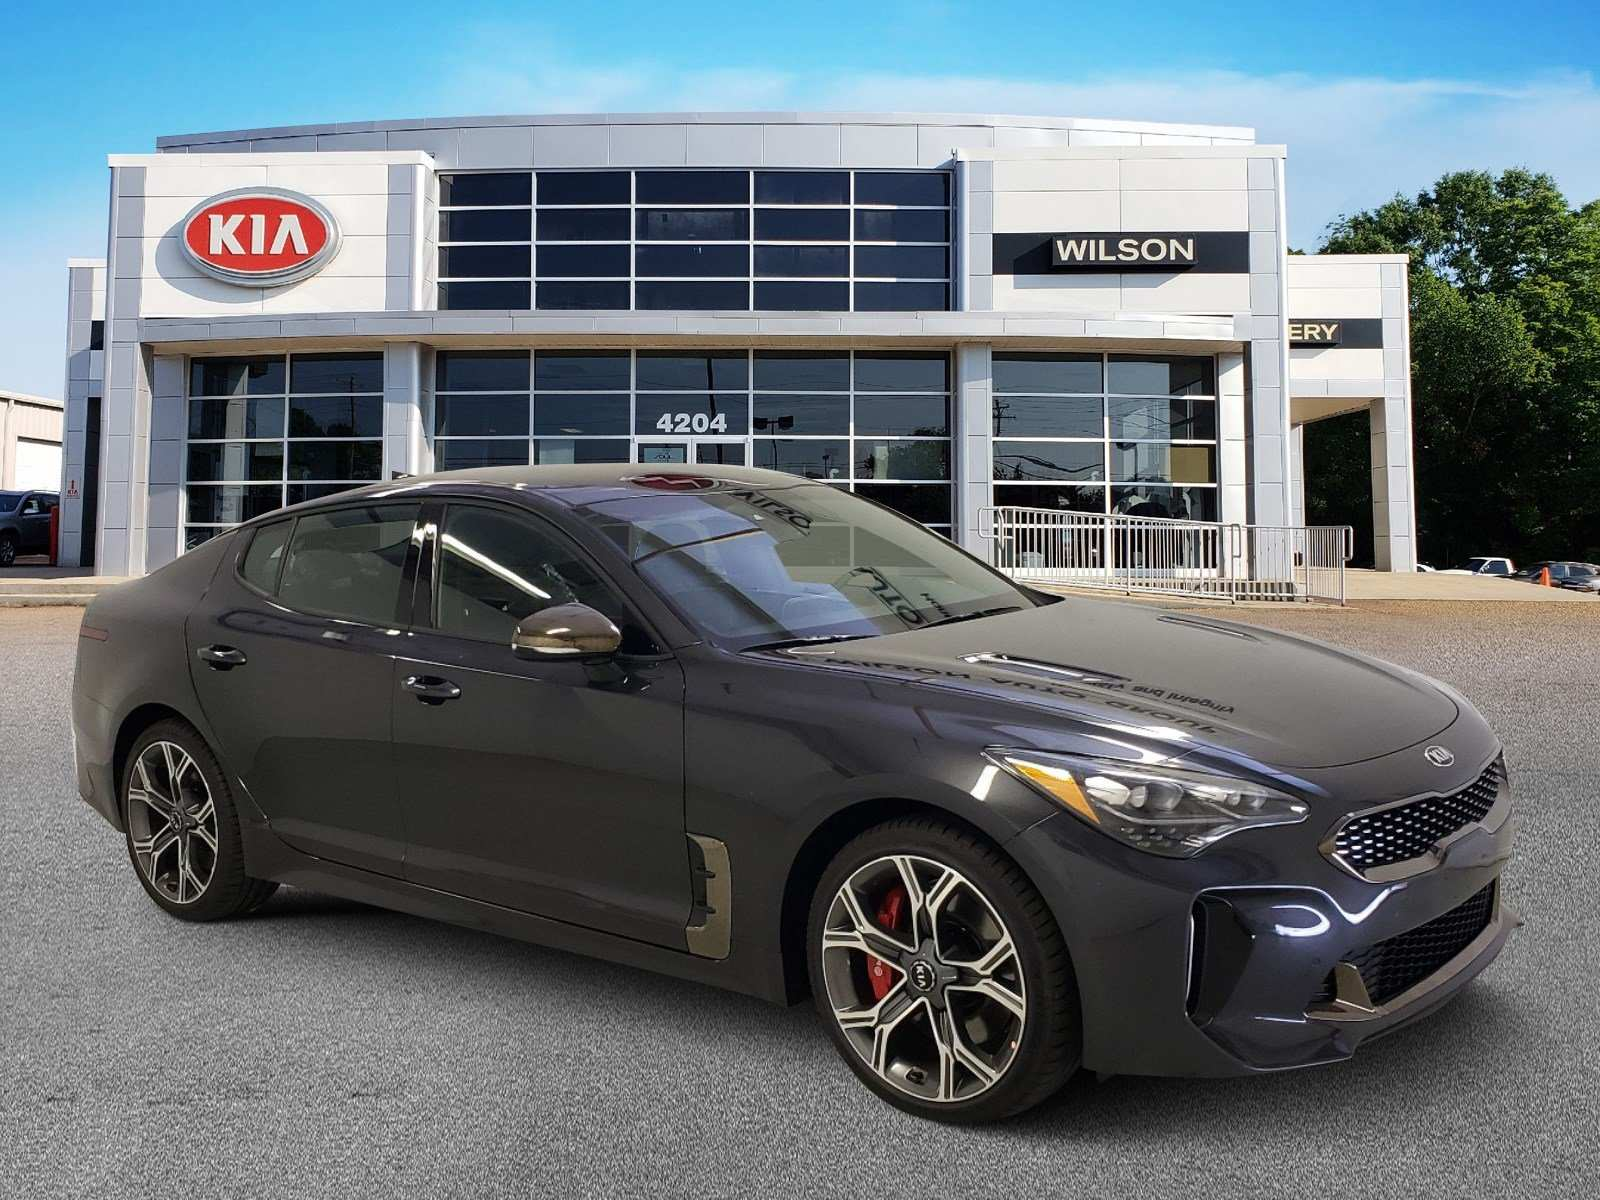 53 New 2019 Kia Gt Stinger Prices with 2019 Kia Gt Stinger